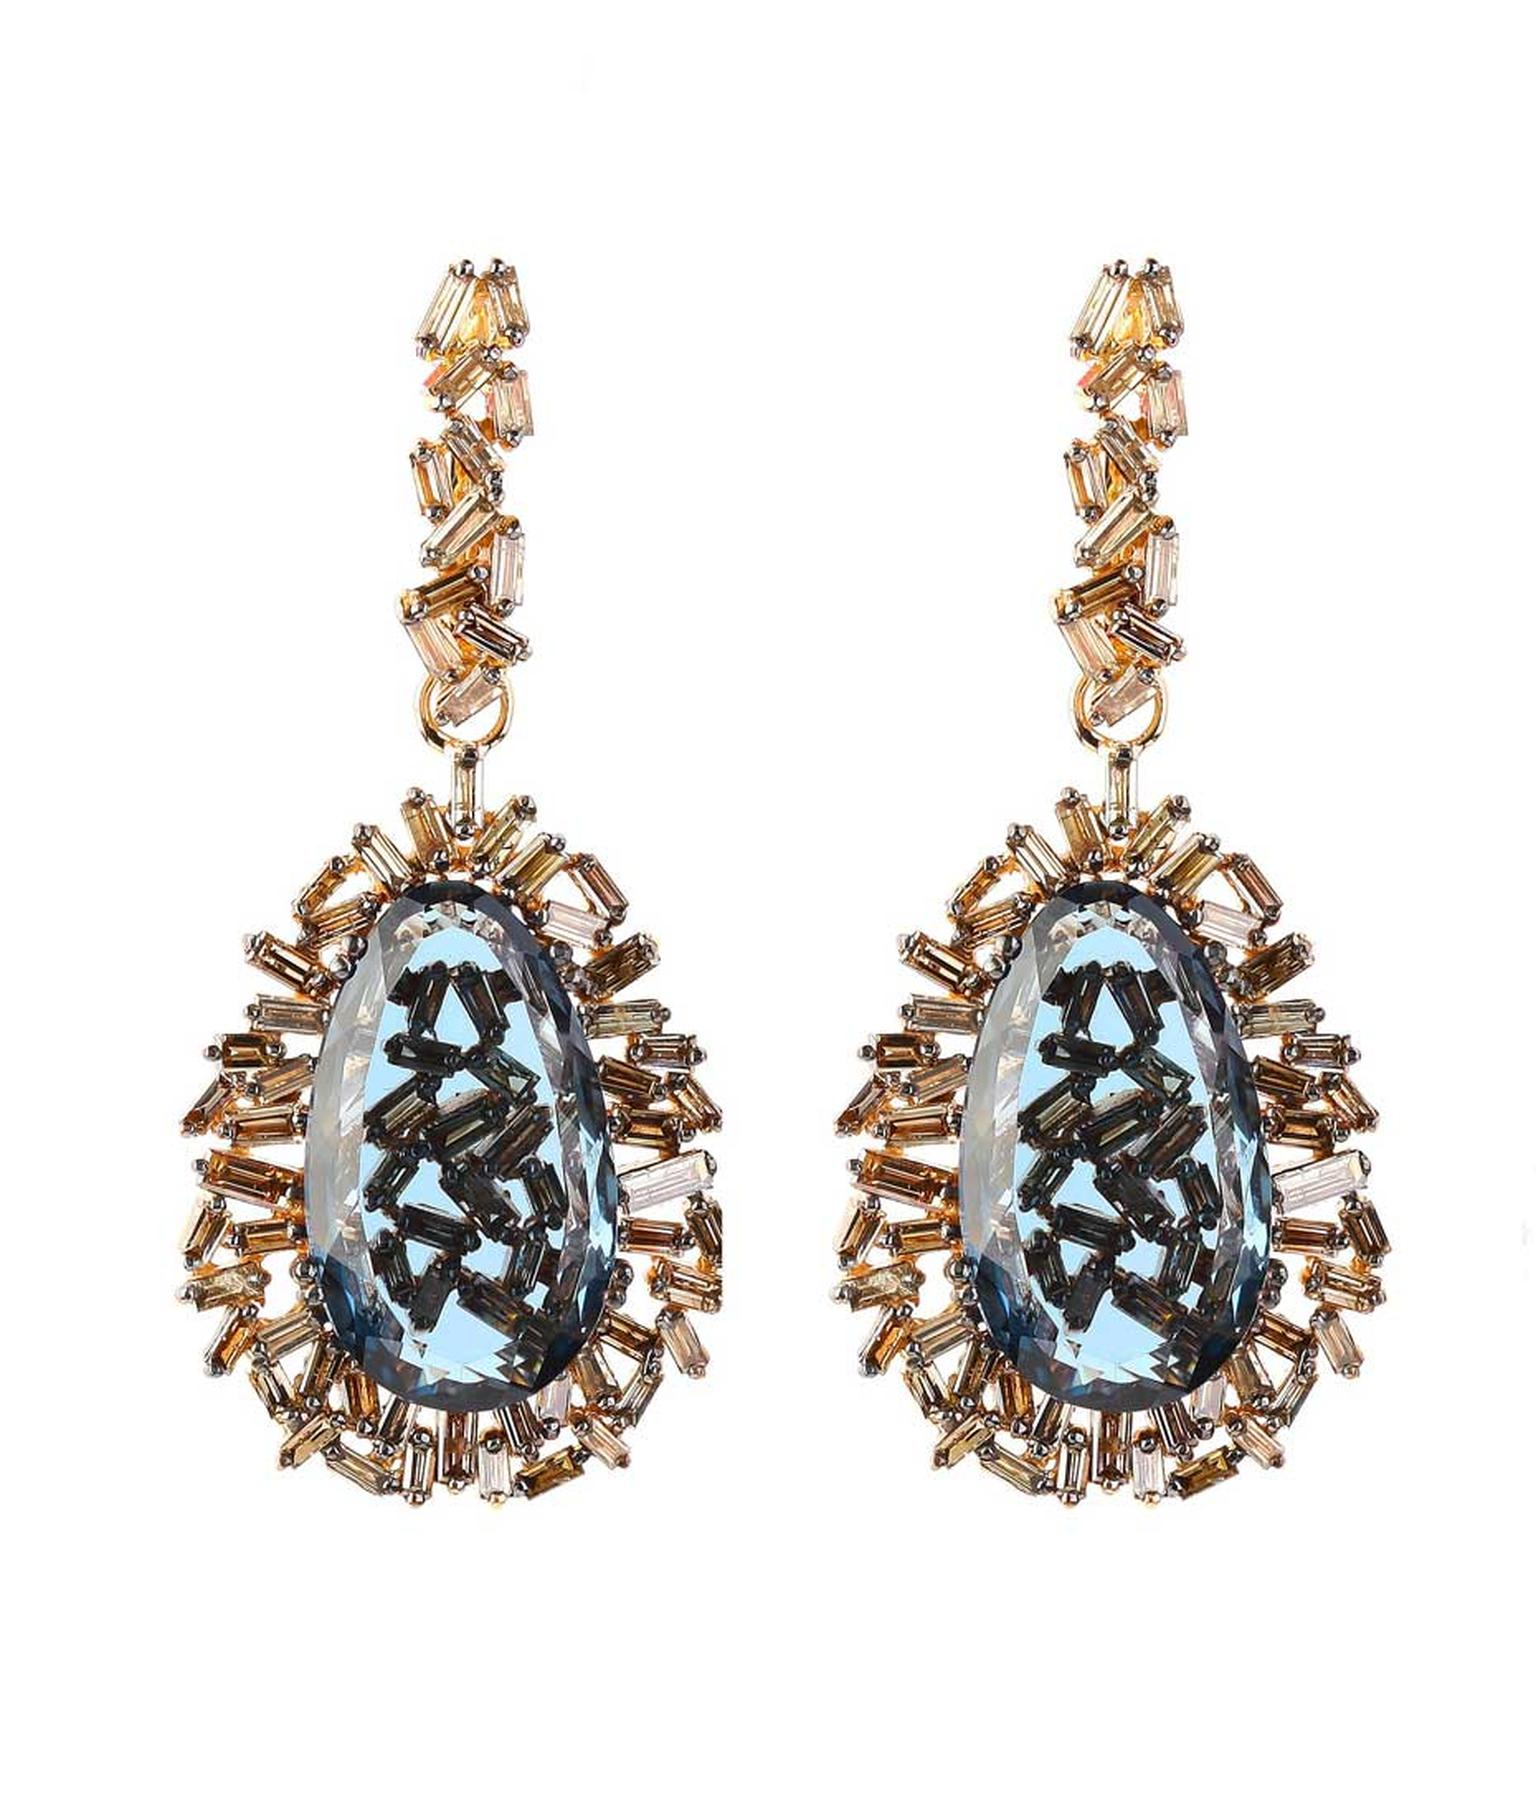 Suzanne Kalan rose gold Vitrine earrings with champagne diamonds and pear-cut London blue topaz ($18,400)